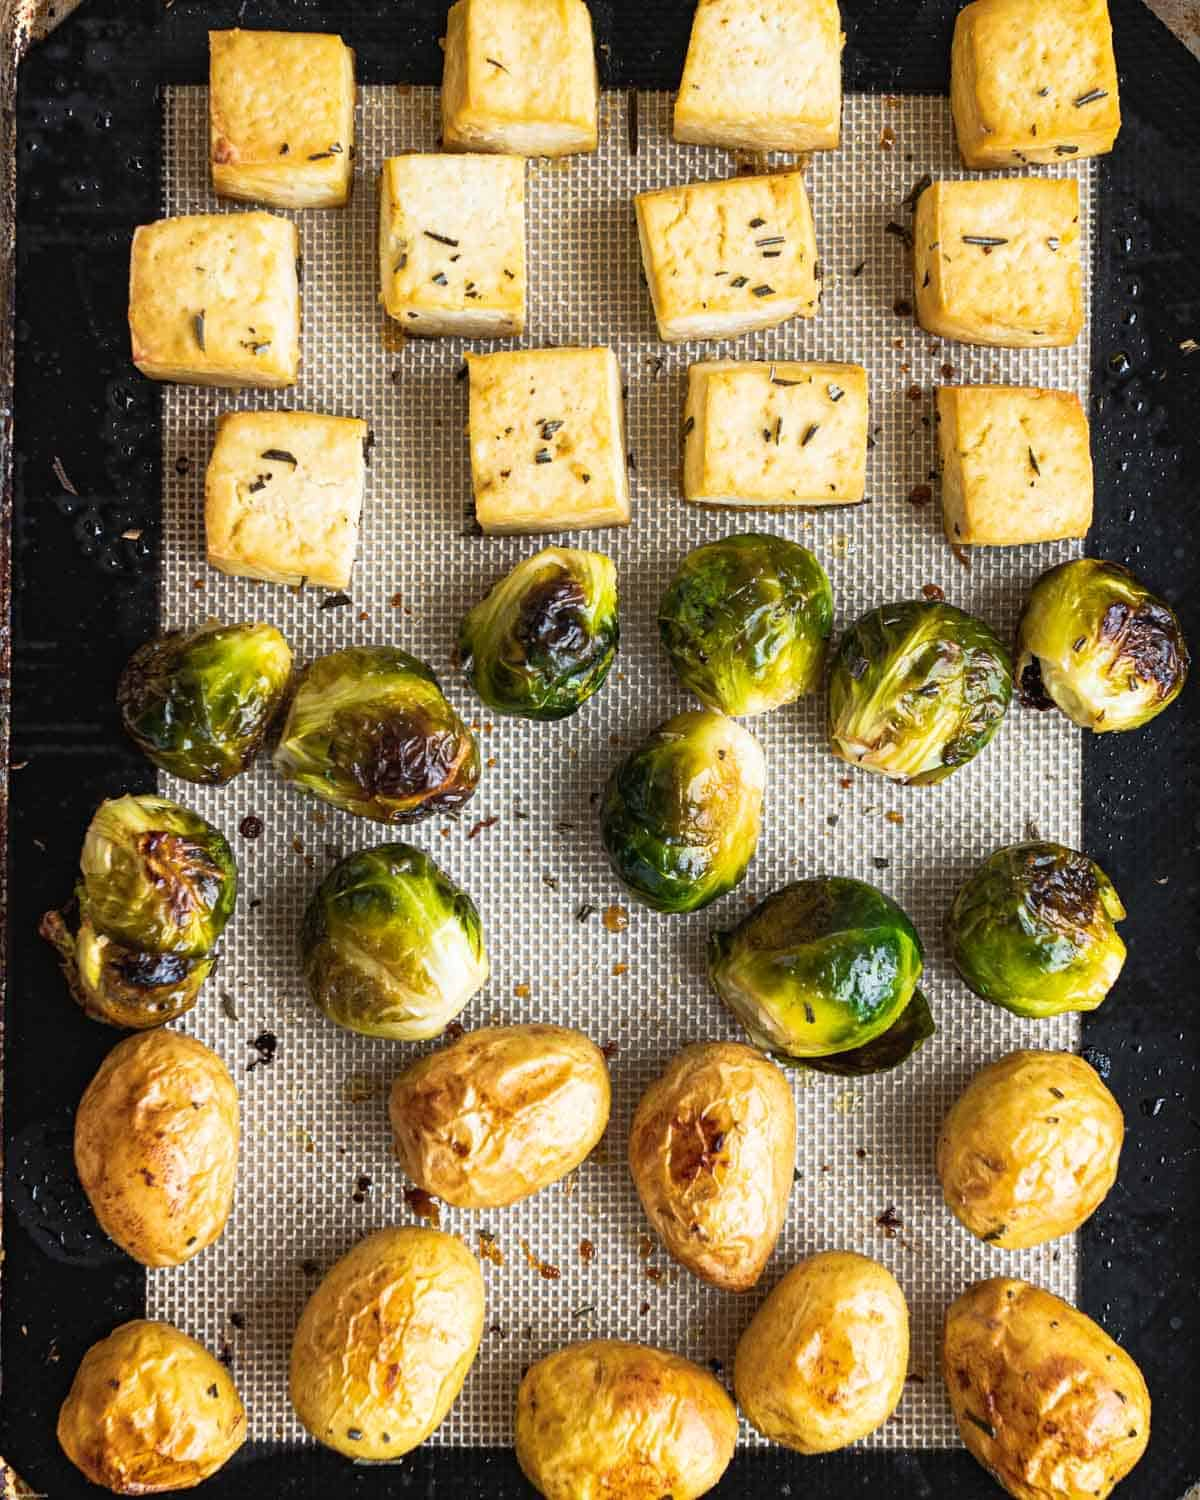 Baked Baby potatoes, Brussels sprouts, and cubed tofu on a baking sheet.